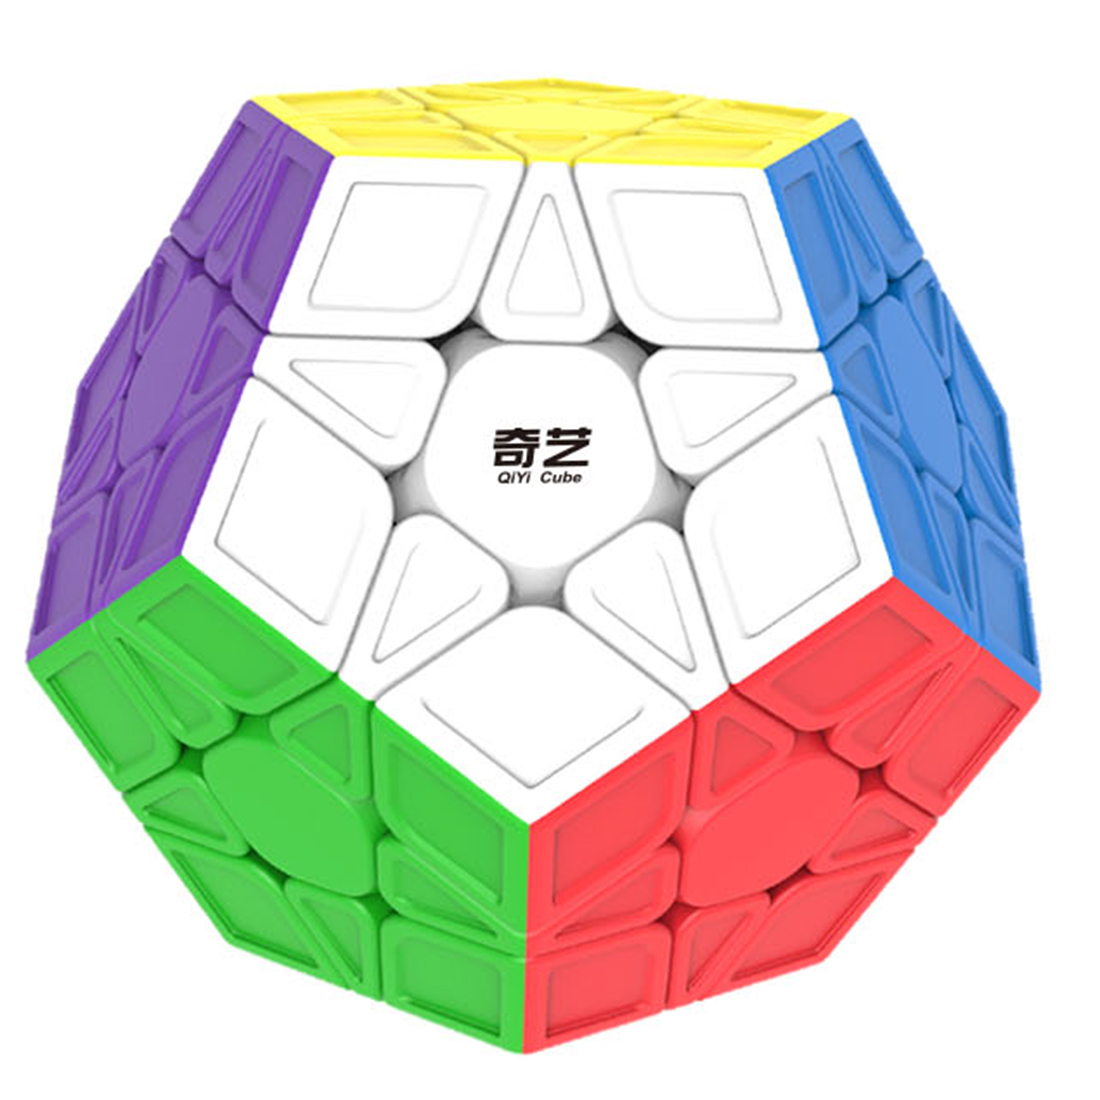 Qiyi QiHeng S MEGAMINX Magic Cube Speed Cubes for Beginers Speed Cubes Puzzle Toys For Kids